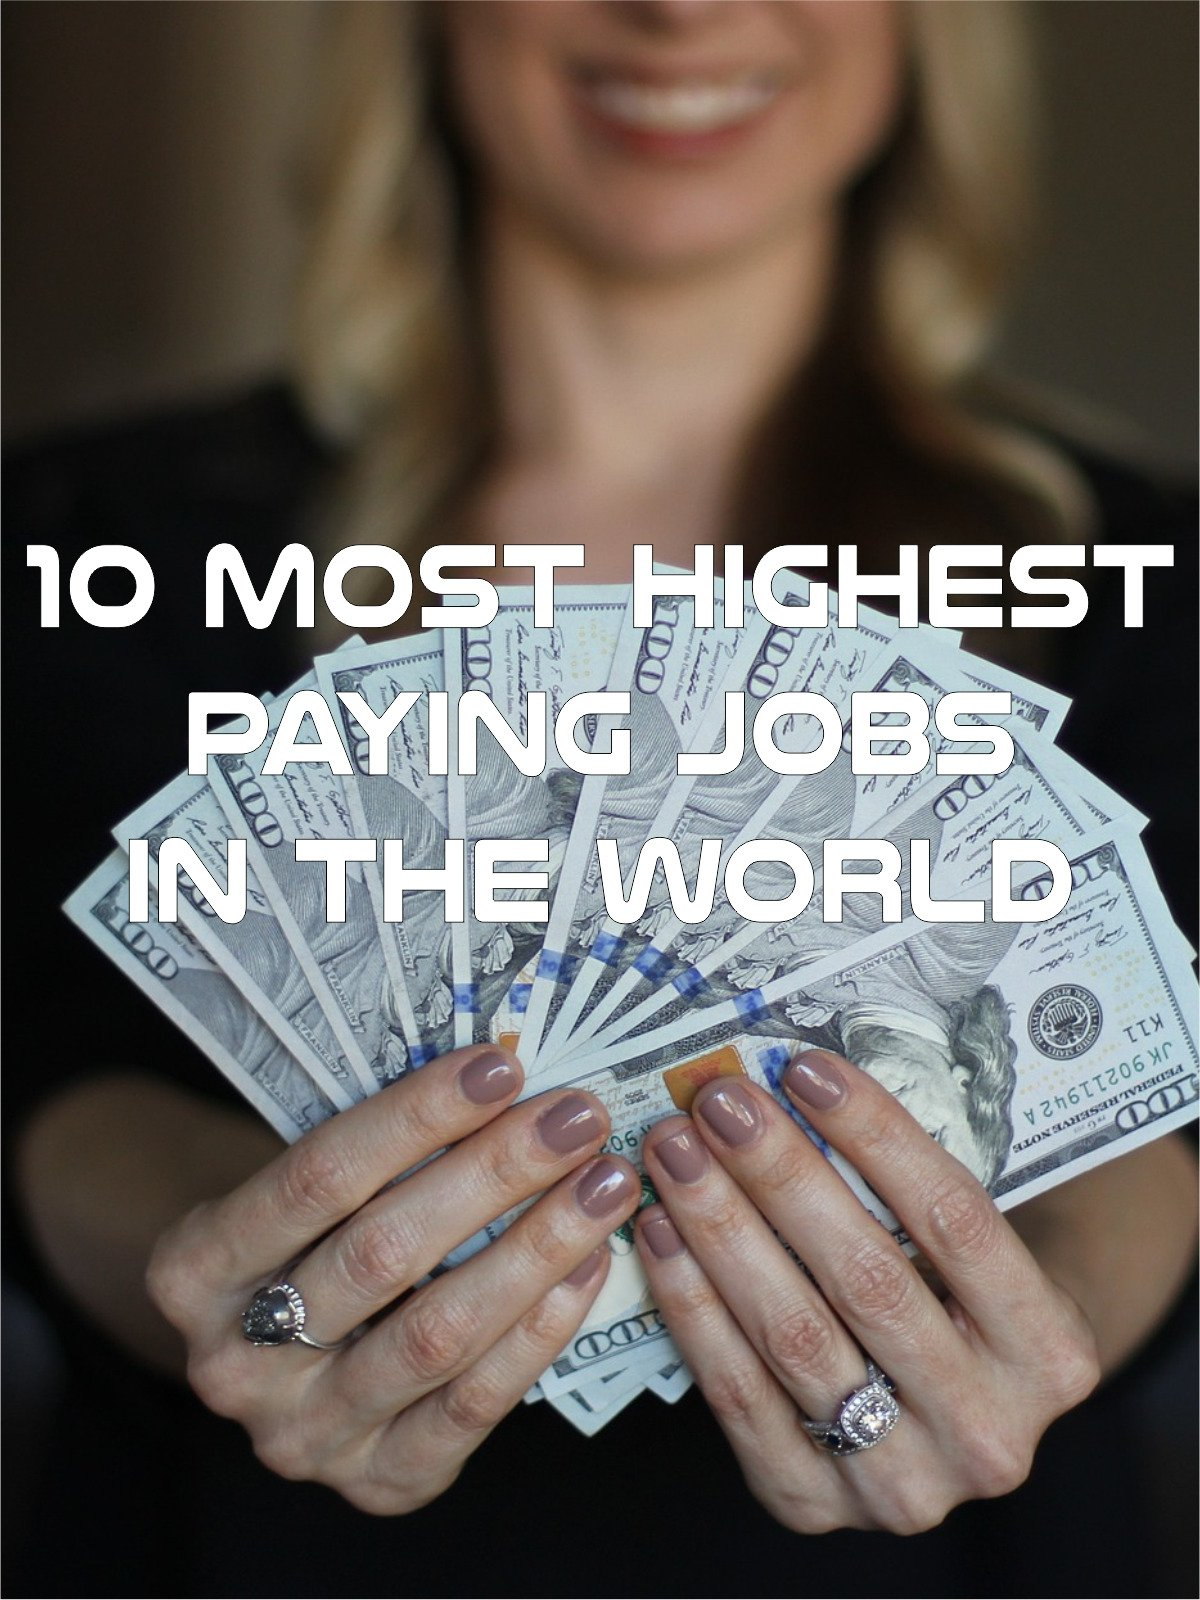 10 Most Highest Paying Jobs in the World